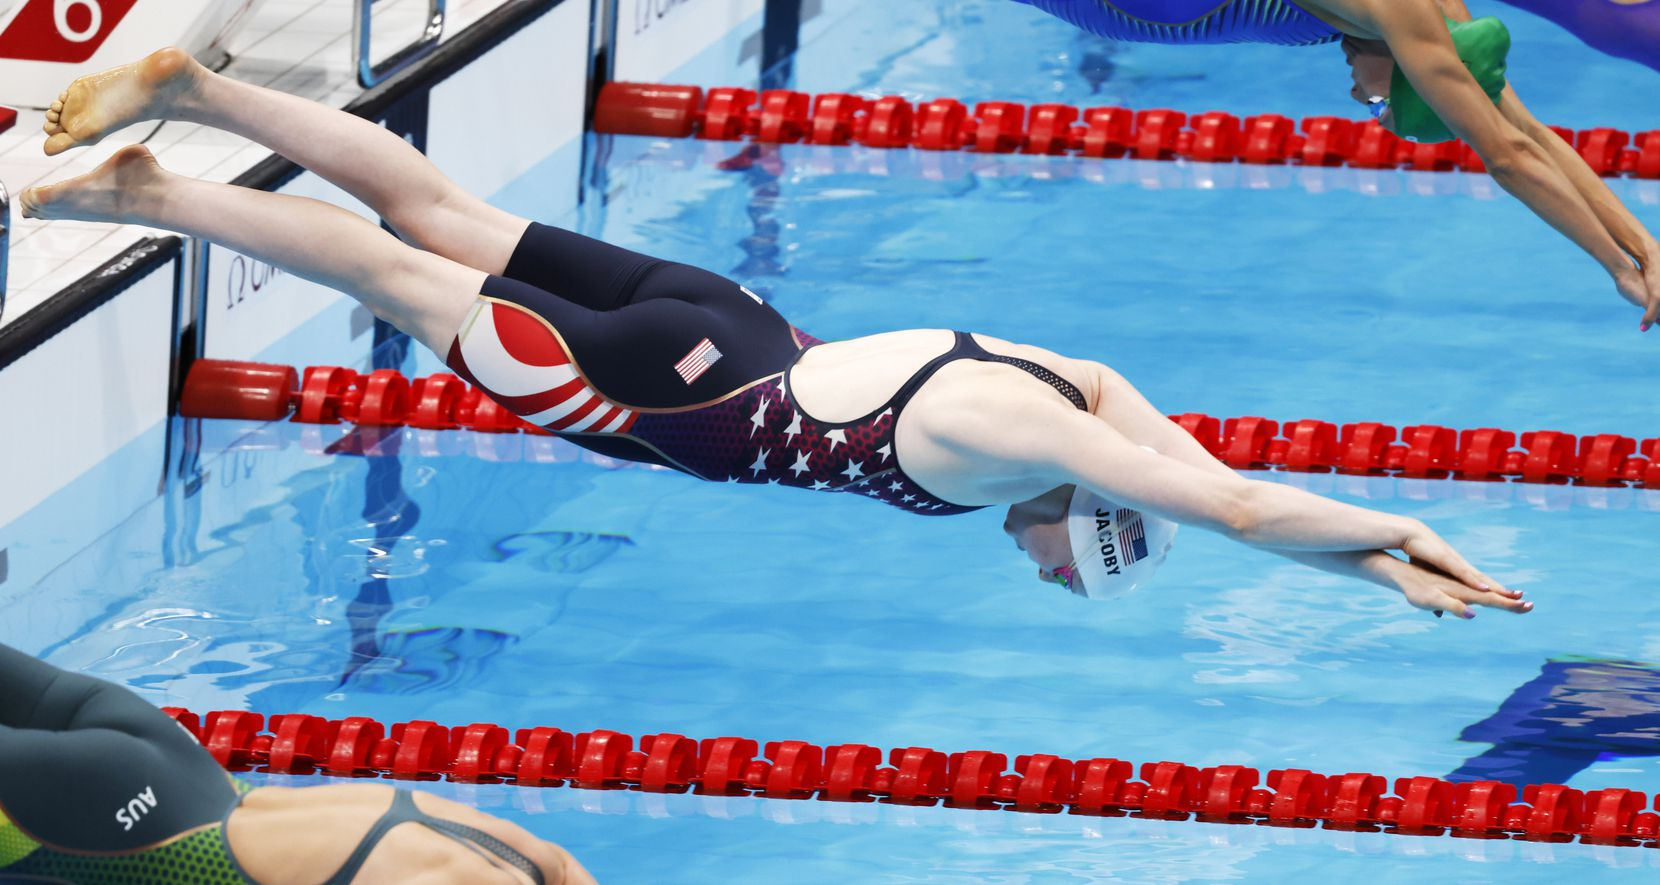 USA's Lydia Jacoby competes in the women's 50 meter breaststroke at a swim qualifying event during the postponed 2020 Tokyo Olympics at Tokyo Aquatics Centre on Sunday, July 25, 2021, in Tokyo, Japan. Jacoby finished with a time of 1:05.52. (Vernon Bryant/The Dallas Morning News)